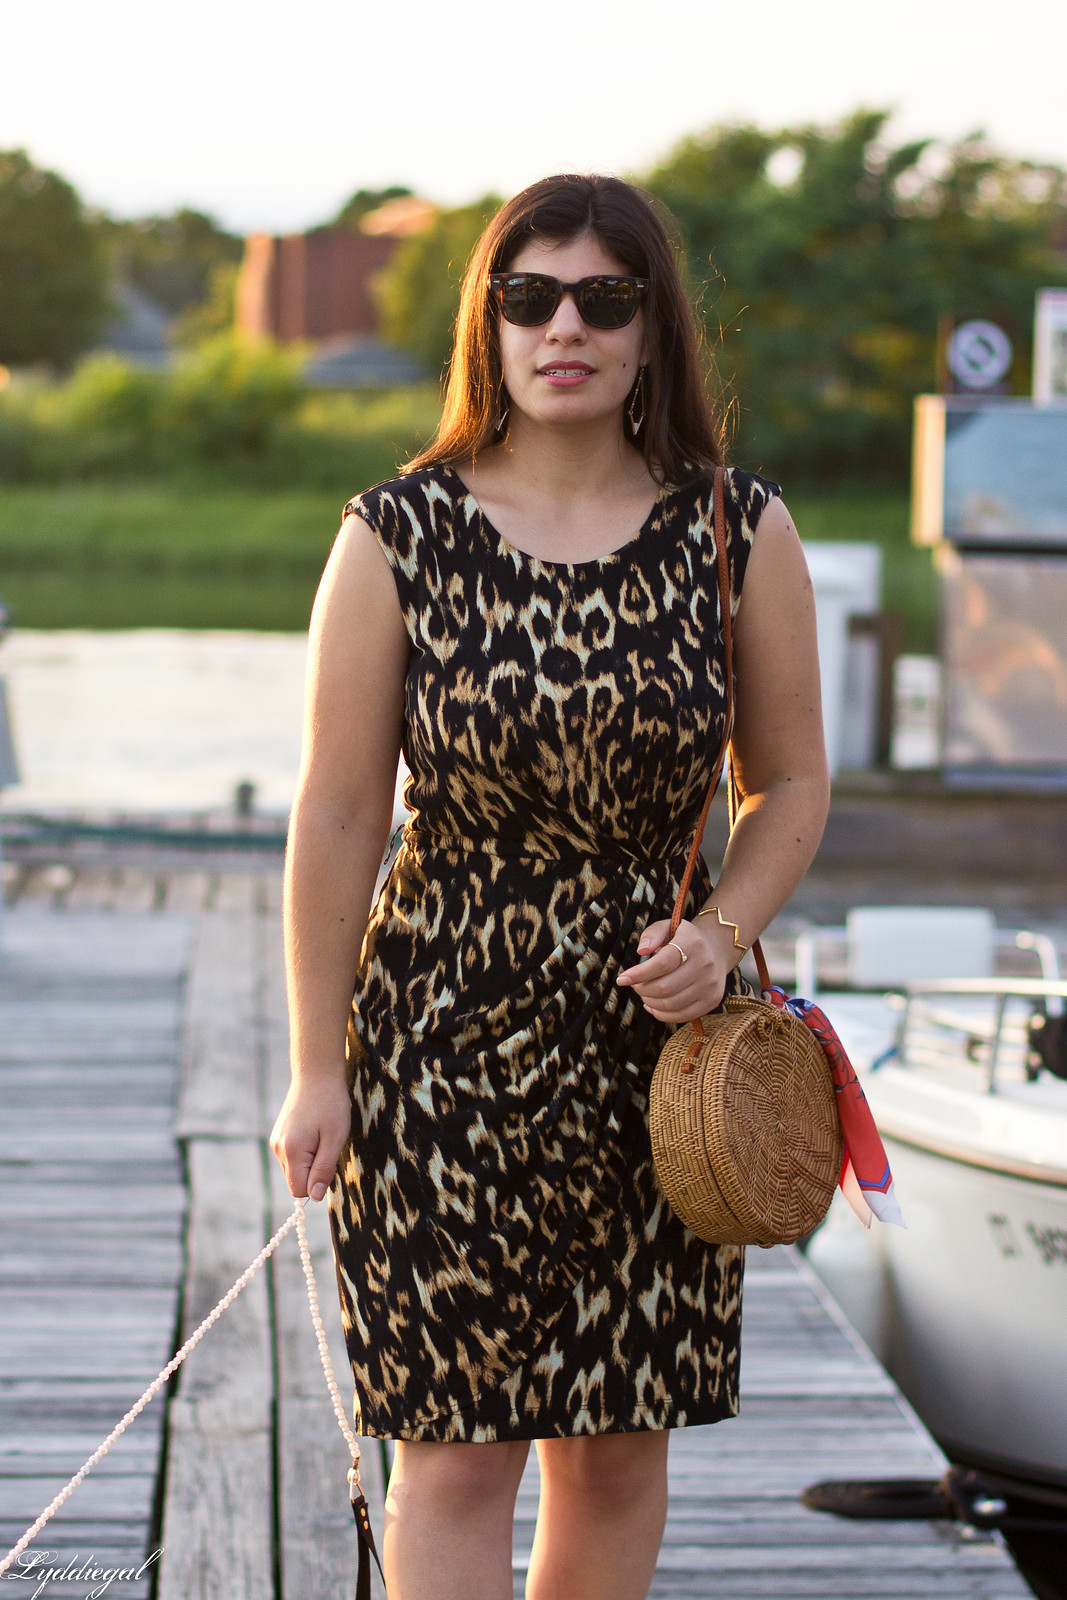 leopard sheath dress, round rattan bag, dog walking-9.jpg